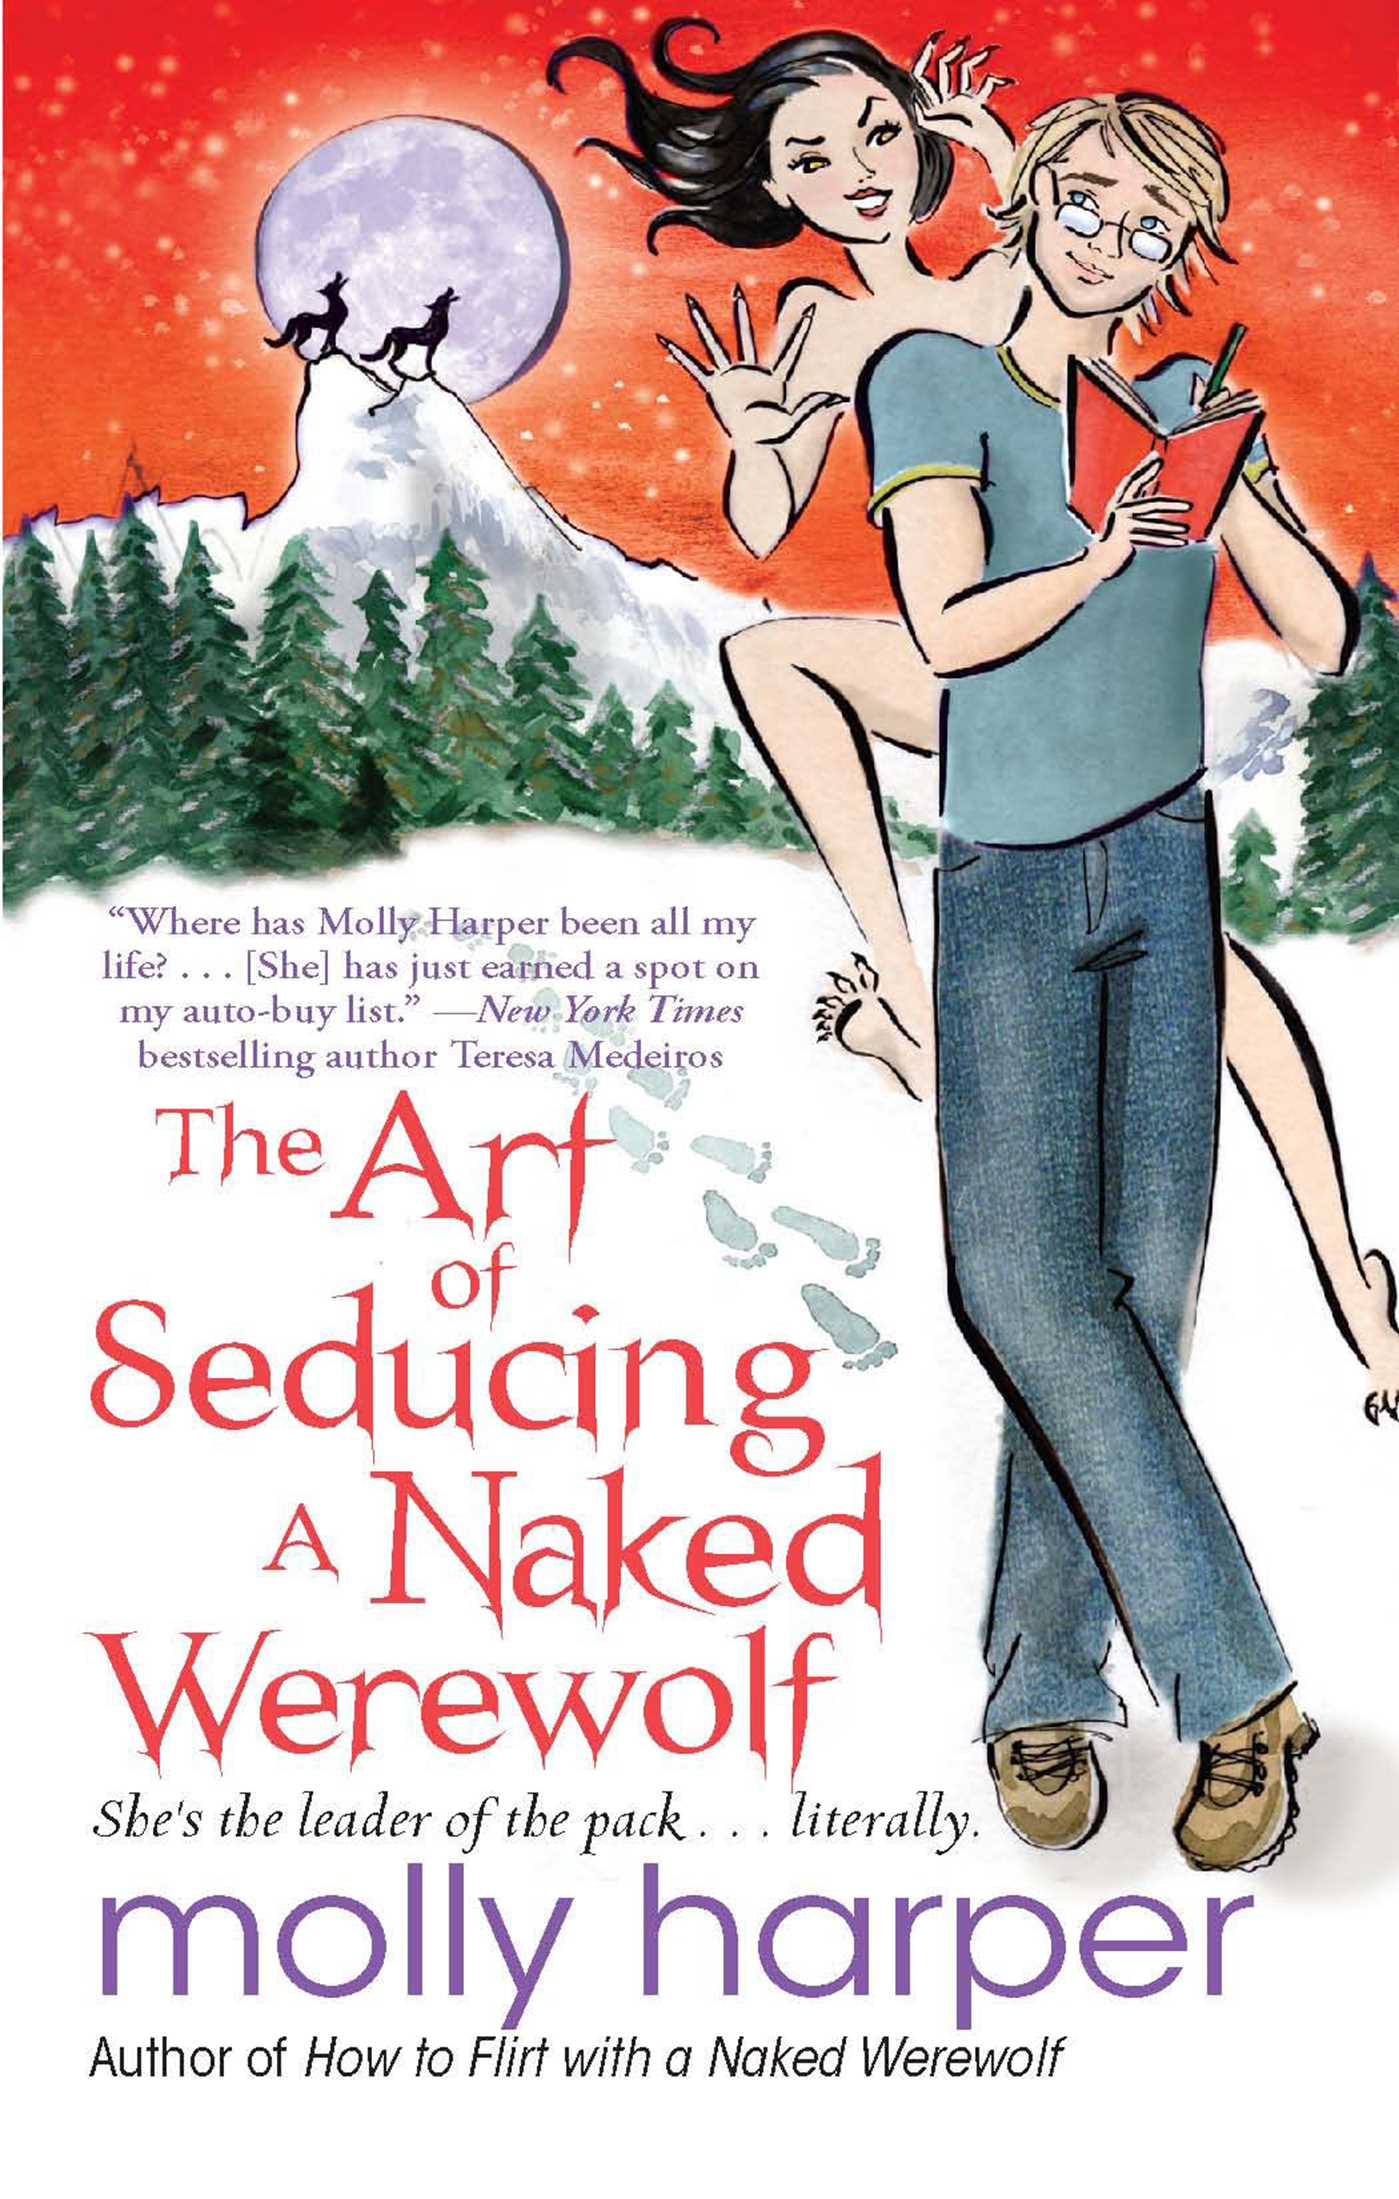 Art-of-seducing-a-naked-werewolf-9781439195895_hr